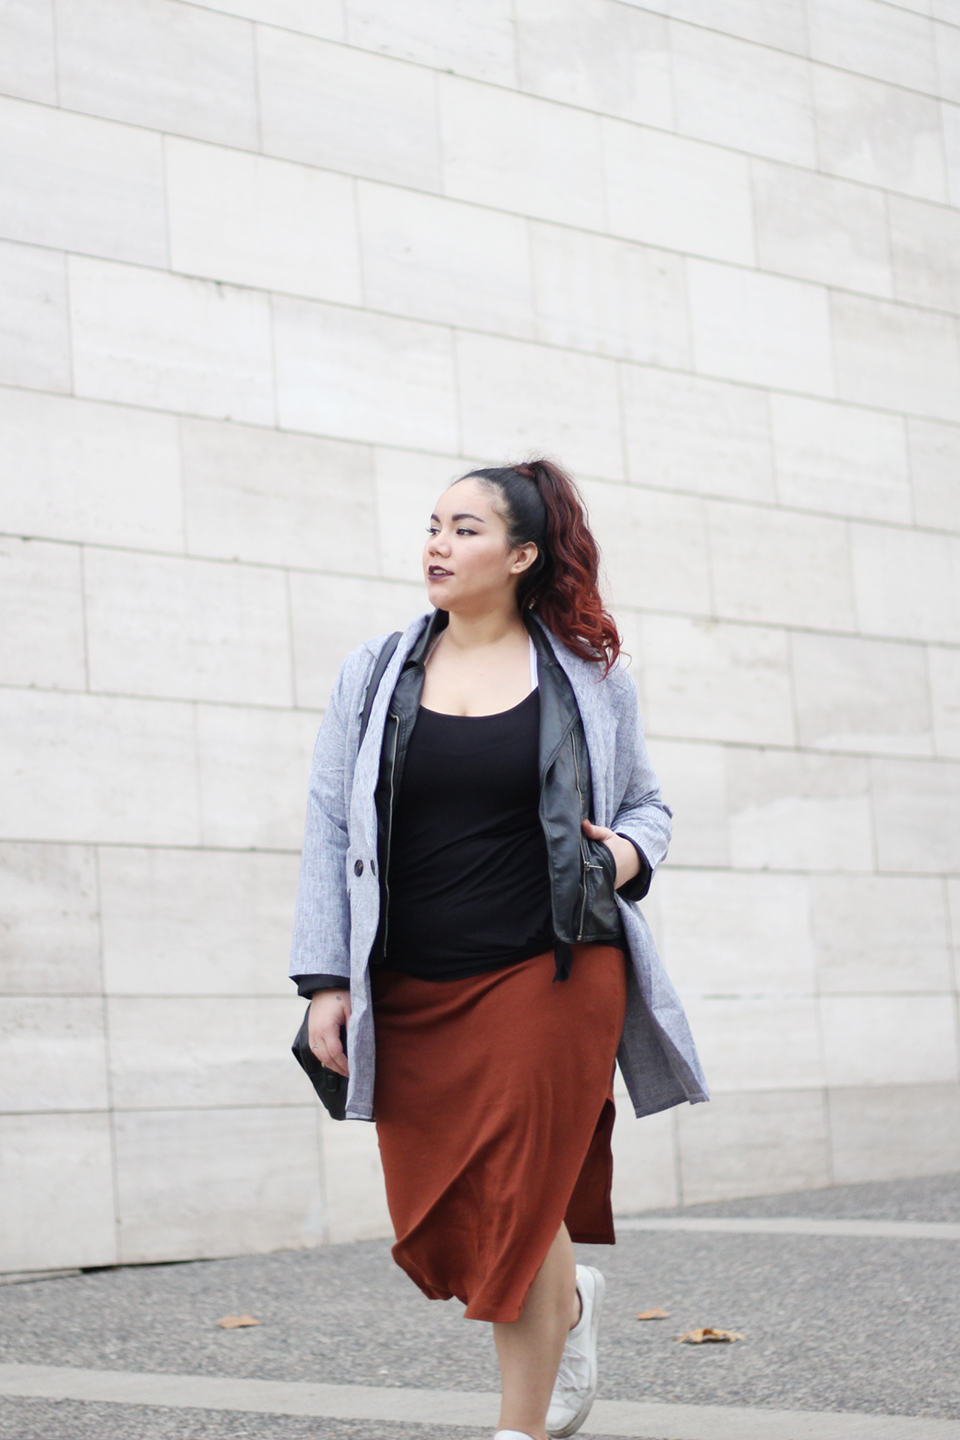 Wear skirts for fall and trust in layers | Golden Strokes